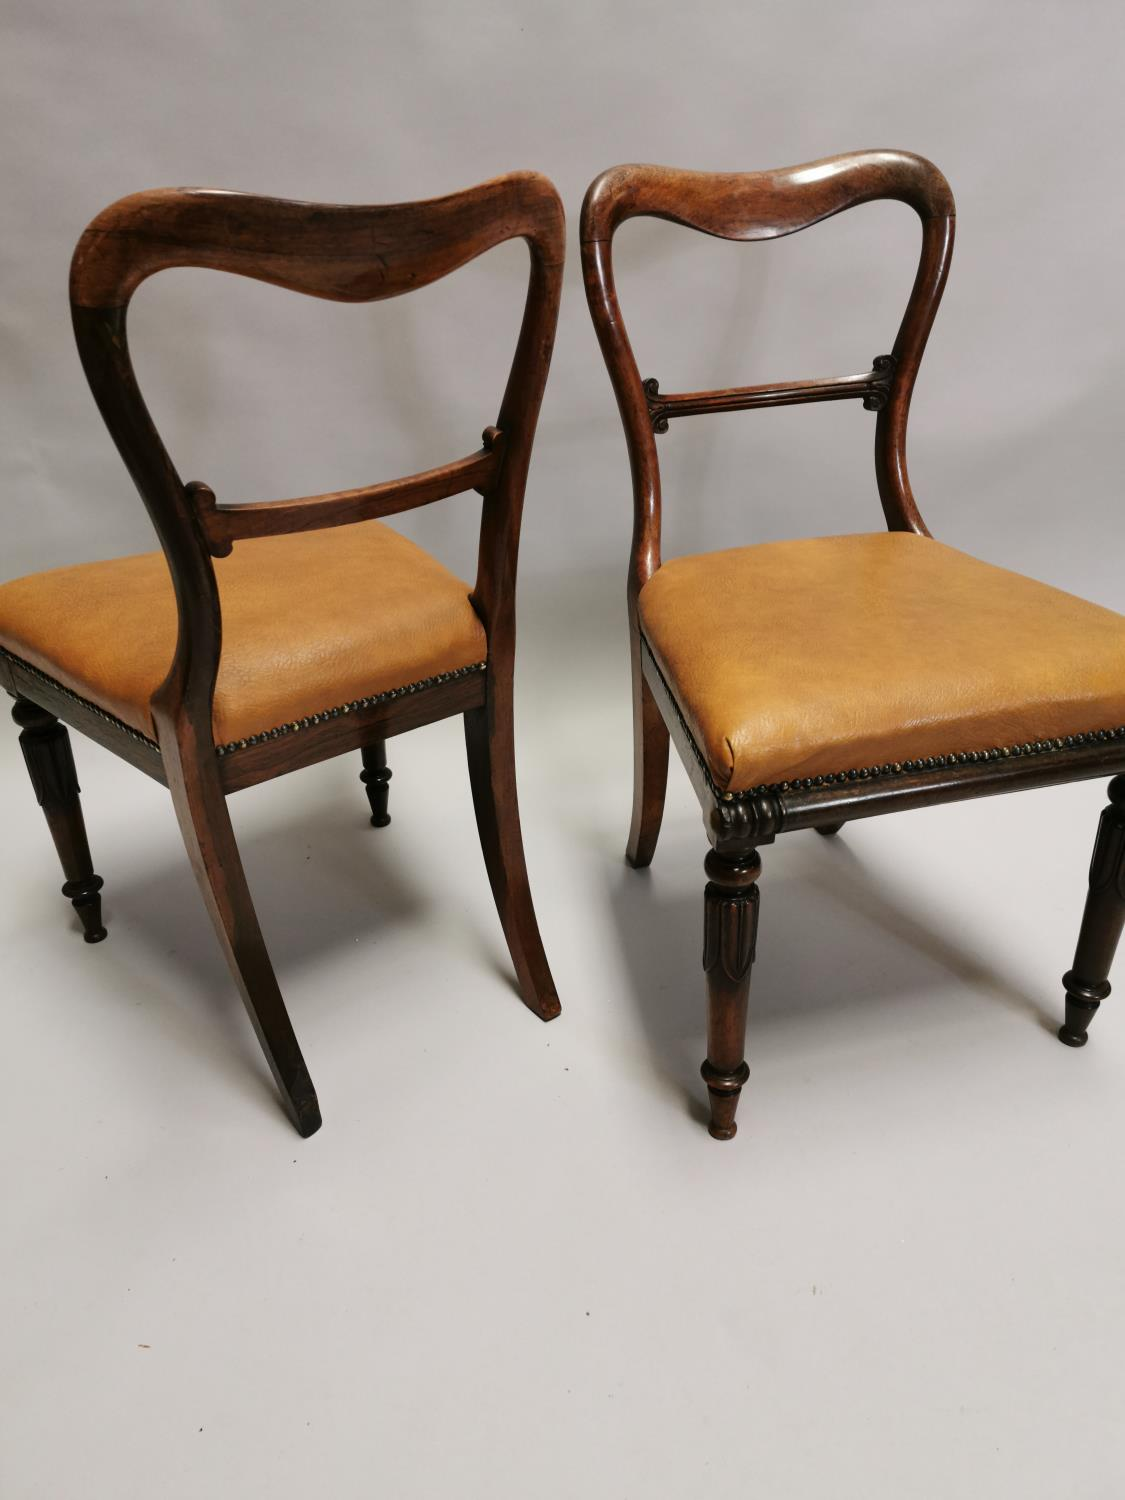 Pair of William IV rosewood side chairs - Image 7 of 7